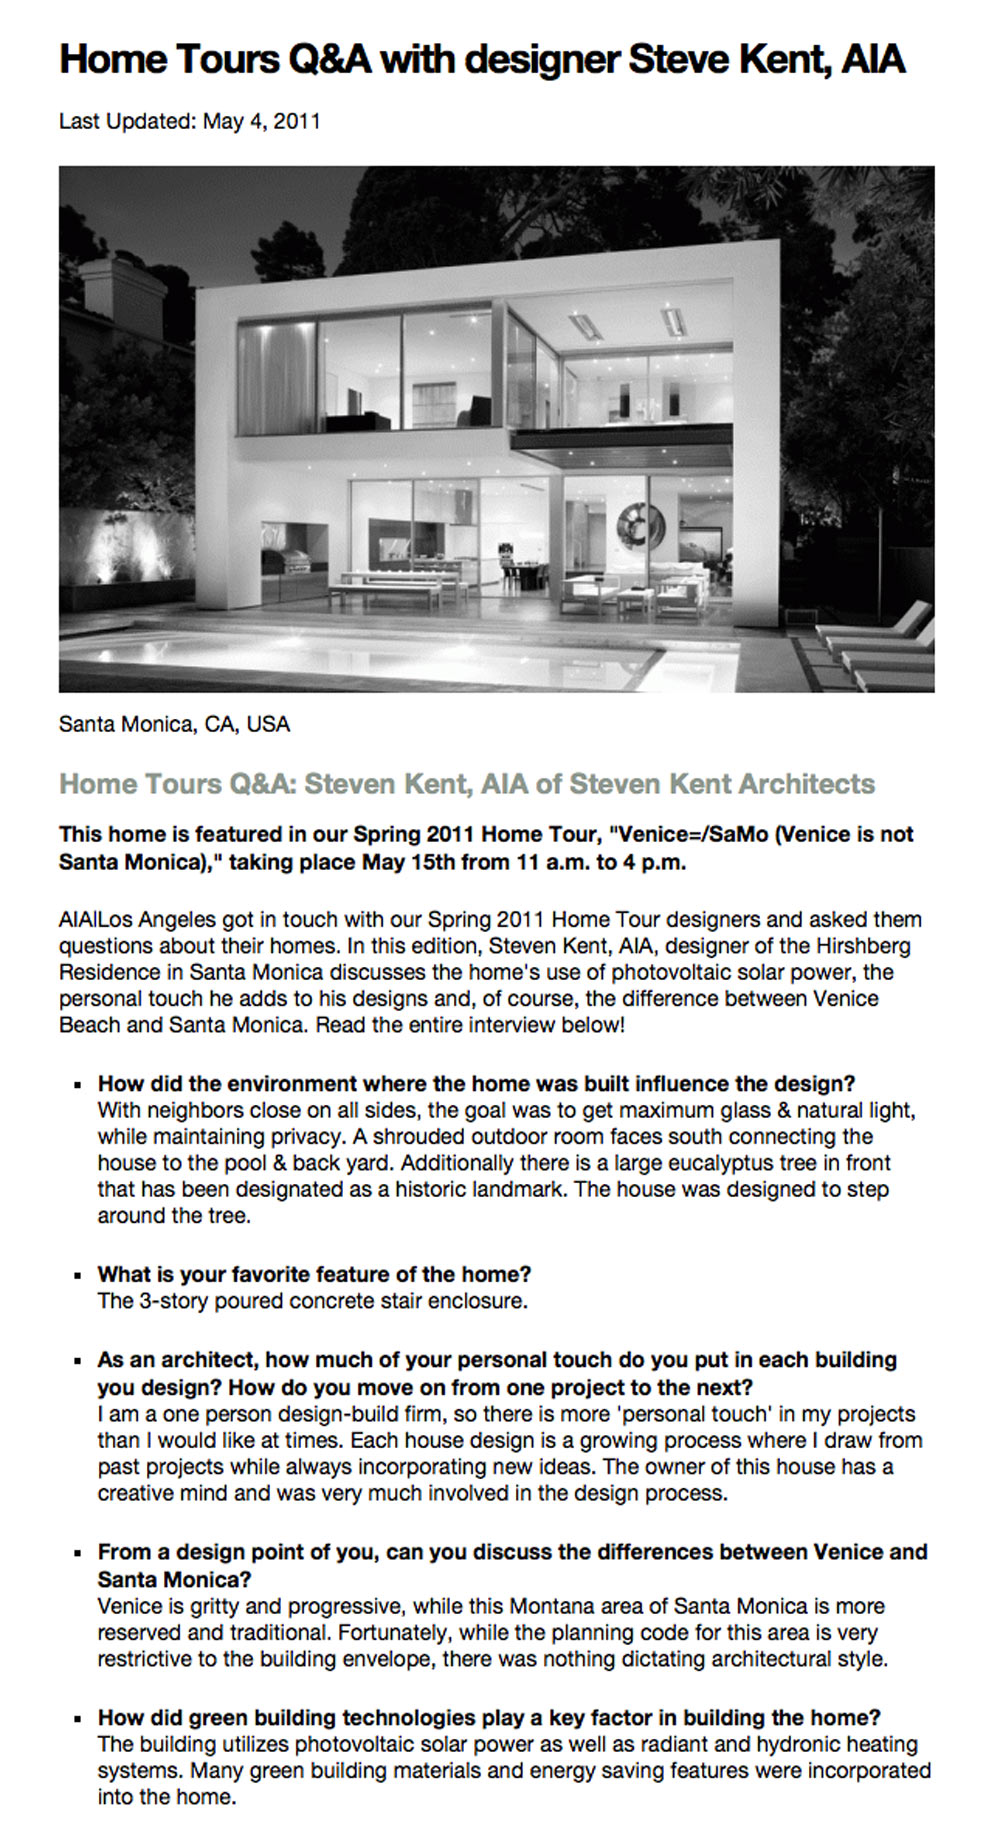 Home-Tours-Q&A-with-Steven-Kent-AIA